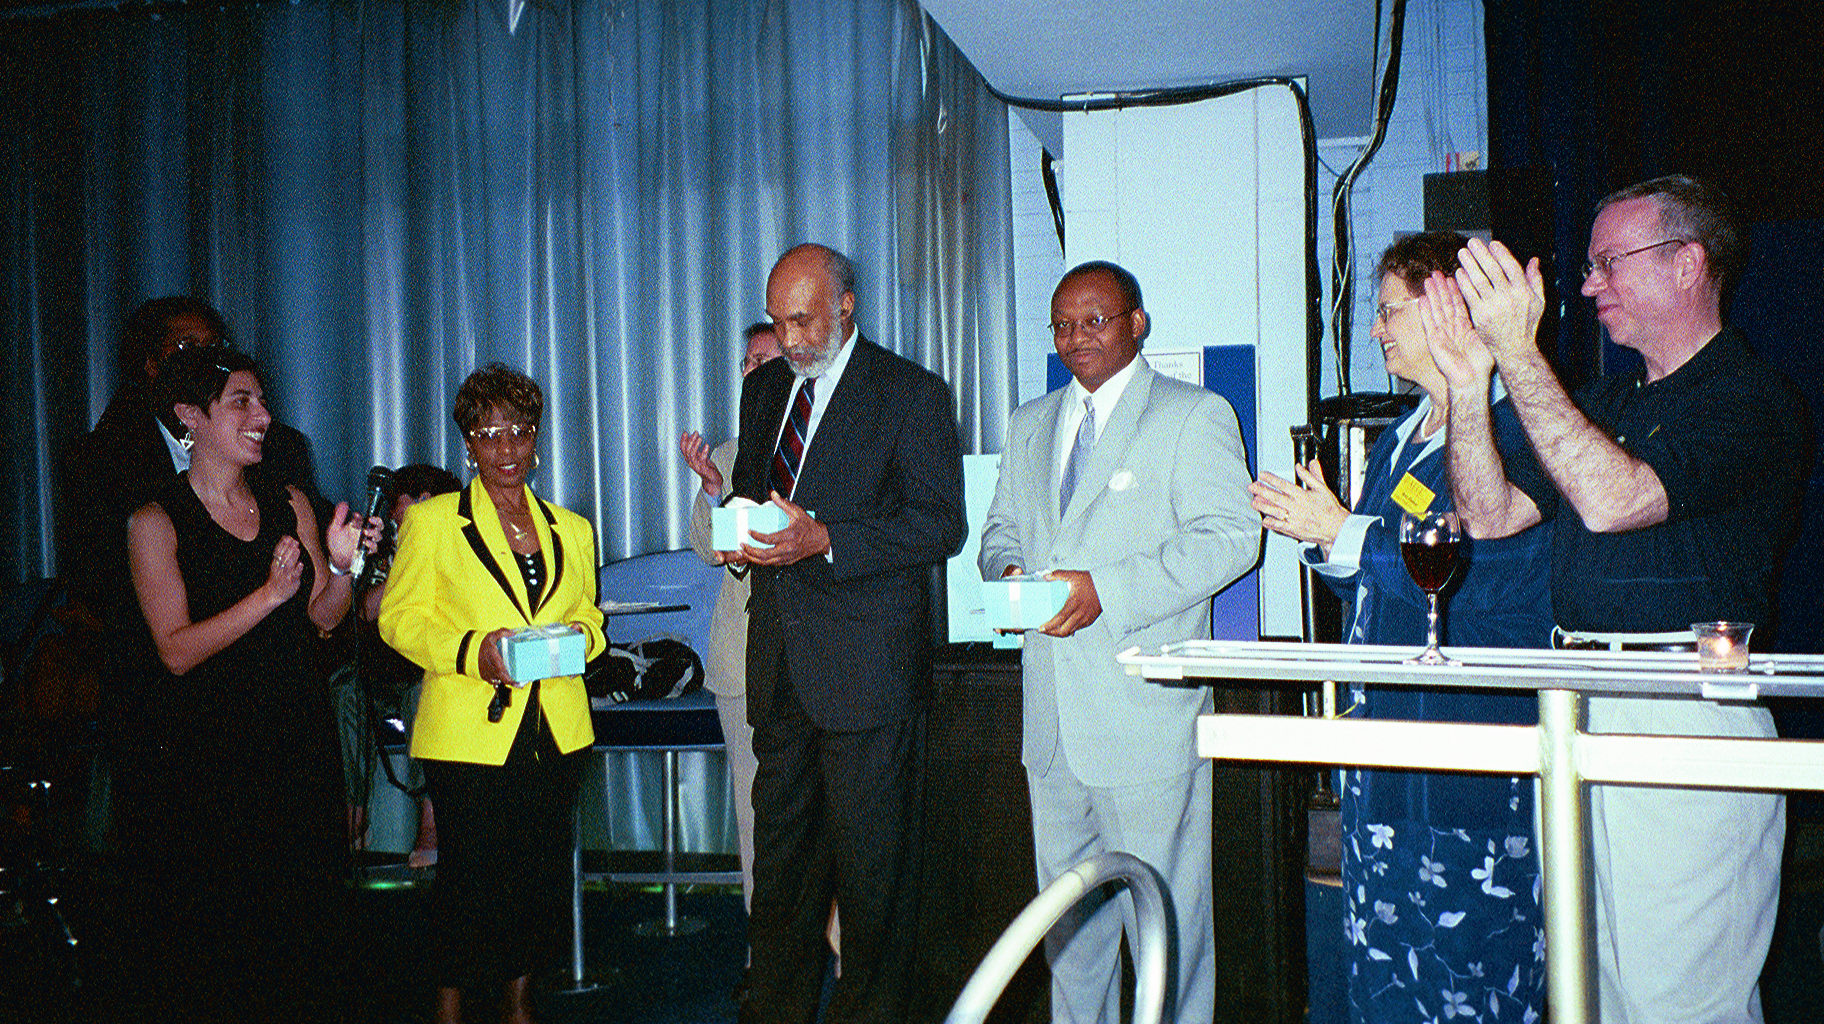 ann fisher and awardees